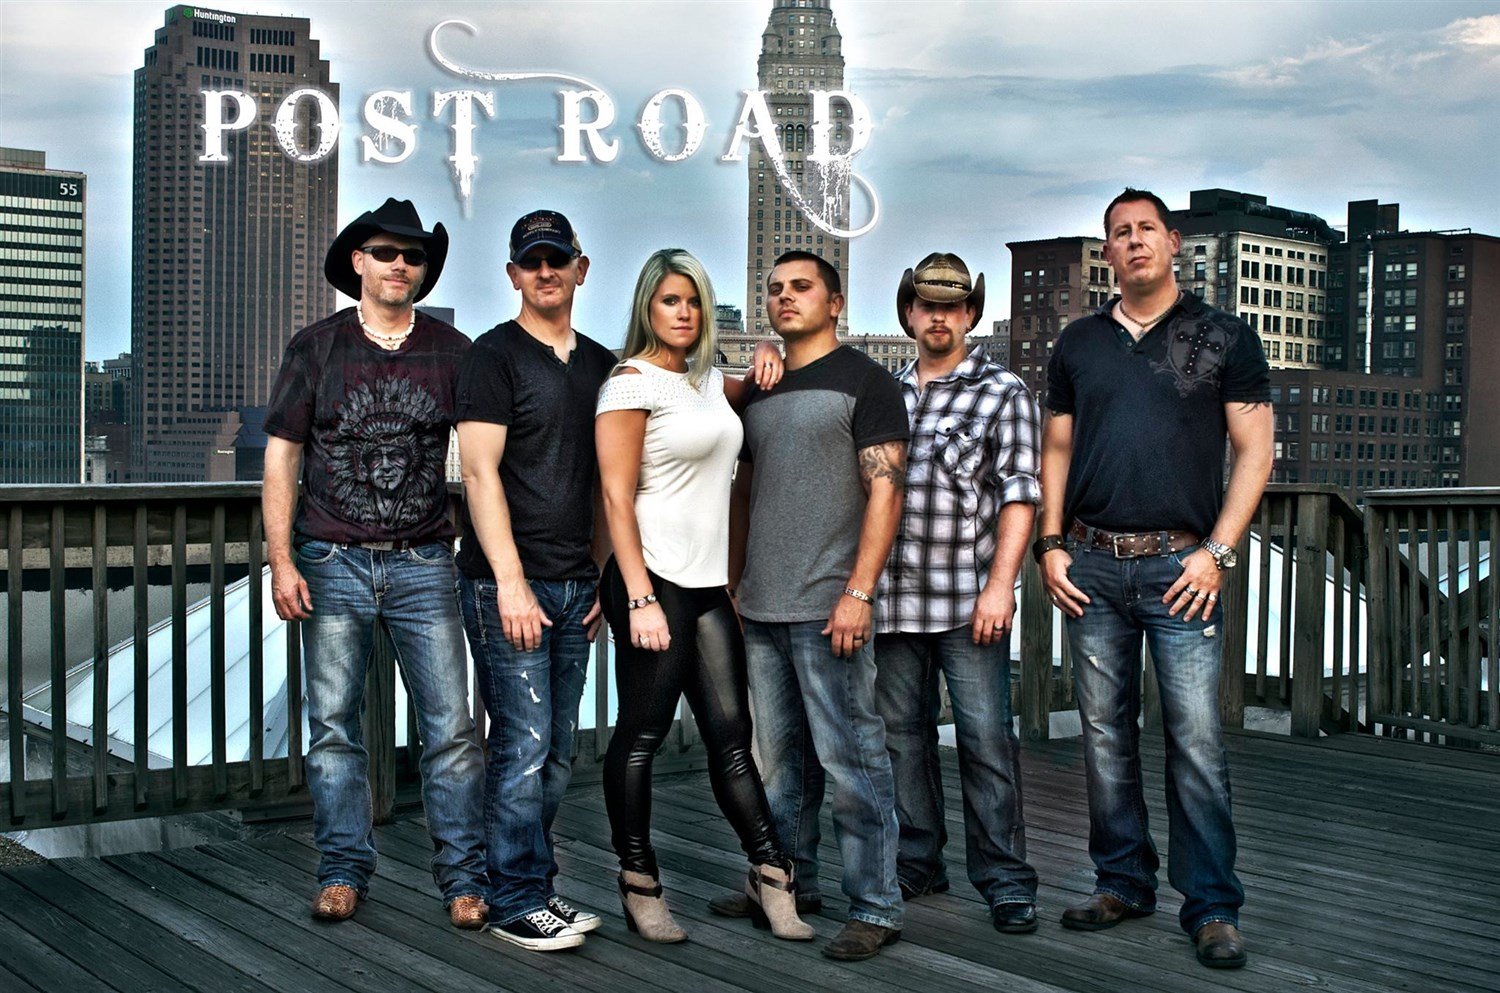 Pavilion @ The Inn Presents: Post Road 2019 Summer Concert Series on Sep 06, 20:00@Aurora Inn Hotel & Event Center - Pick a seat, Buy tickets and Get information on Pavilion @ The Inn